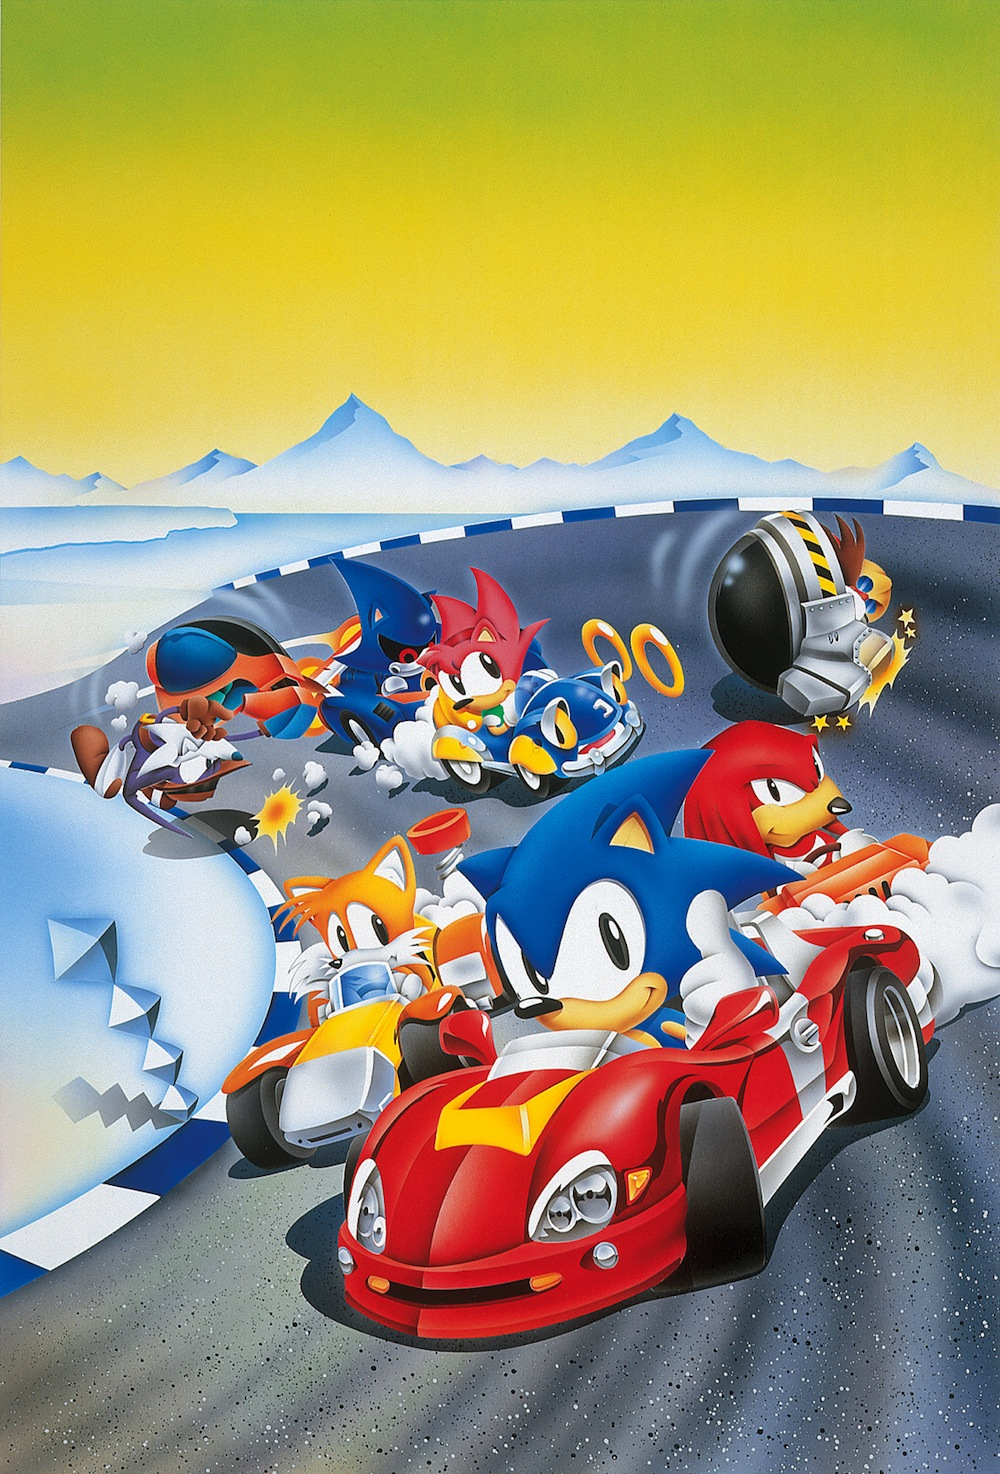 New Ratings Suggest Sonic Drift 2 Finally Coming Overseas to 3DS eShop